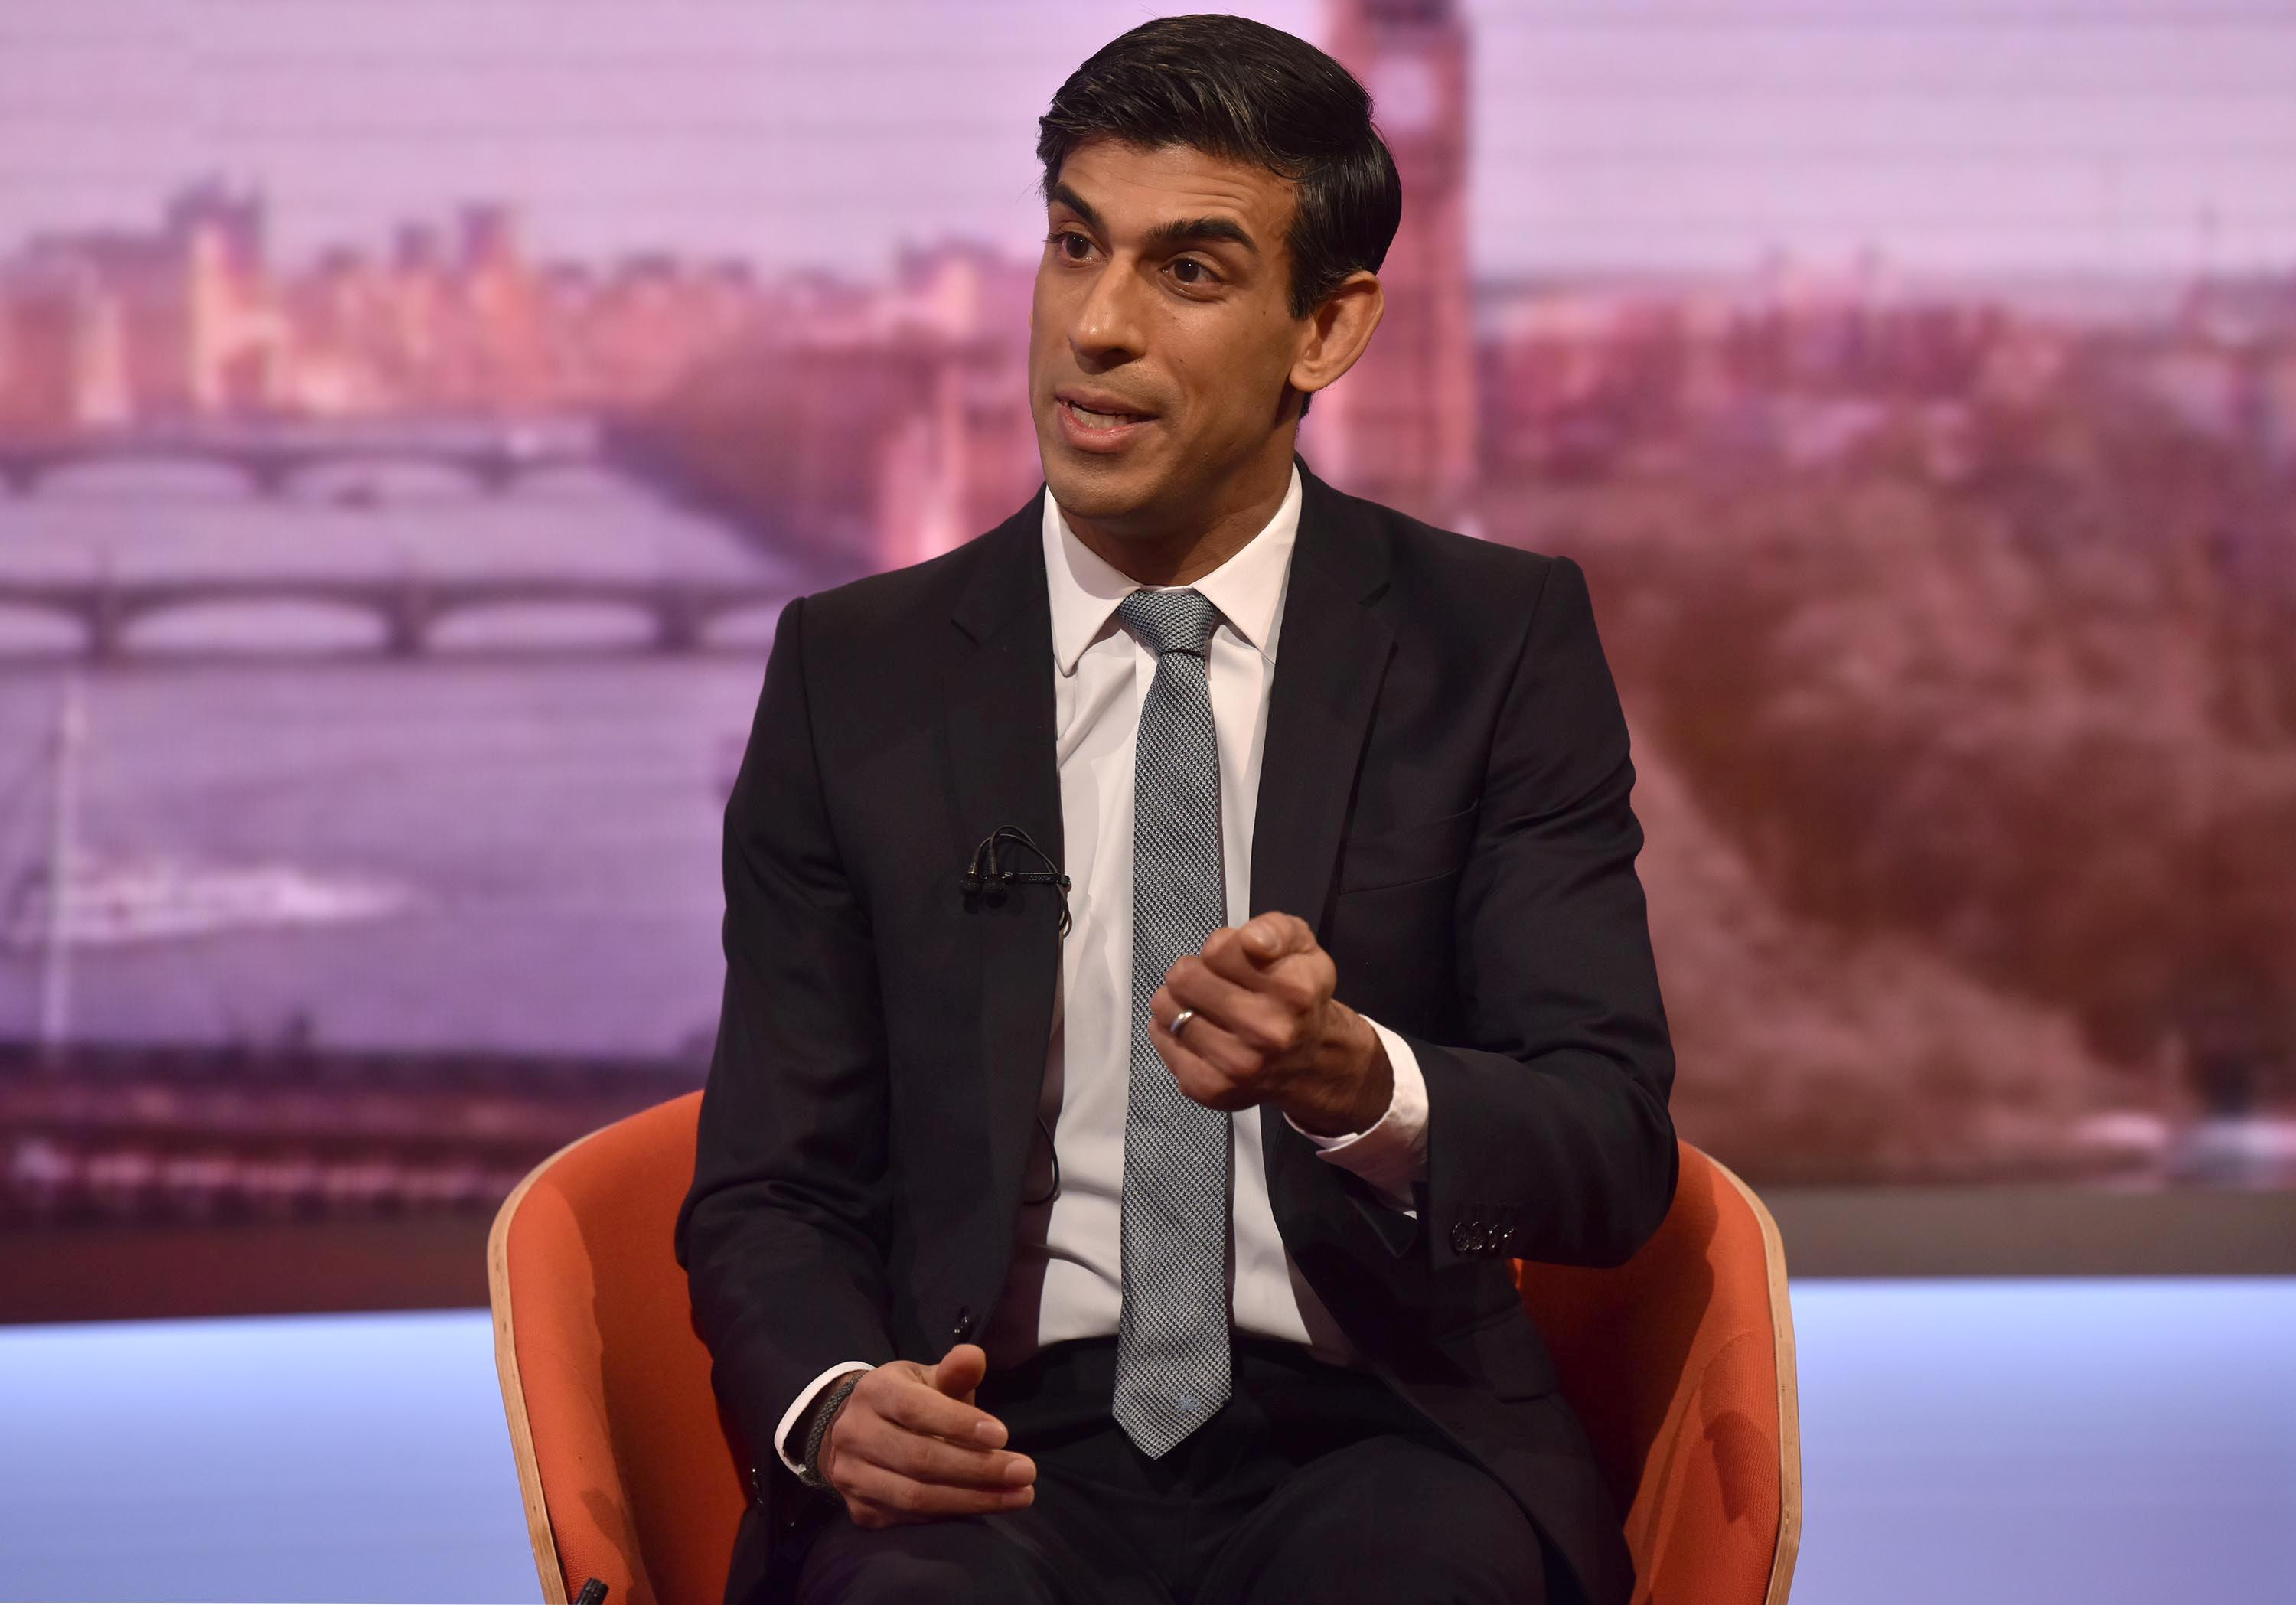 Brexit law to return to parliament before Christmas: deputy FM Sunak